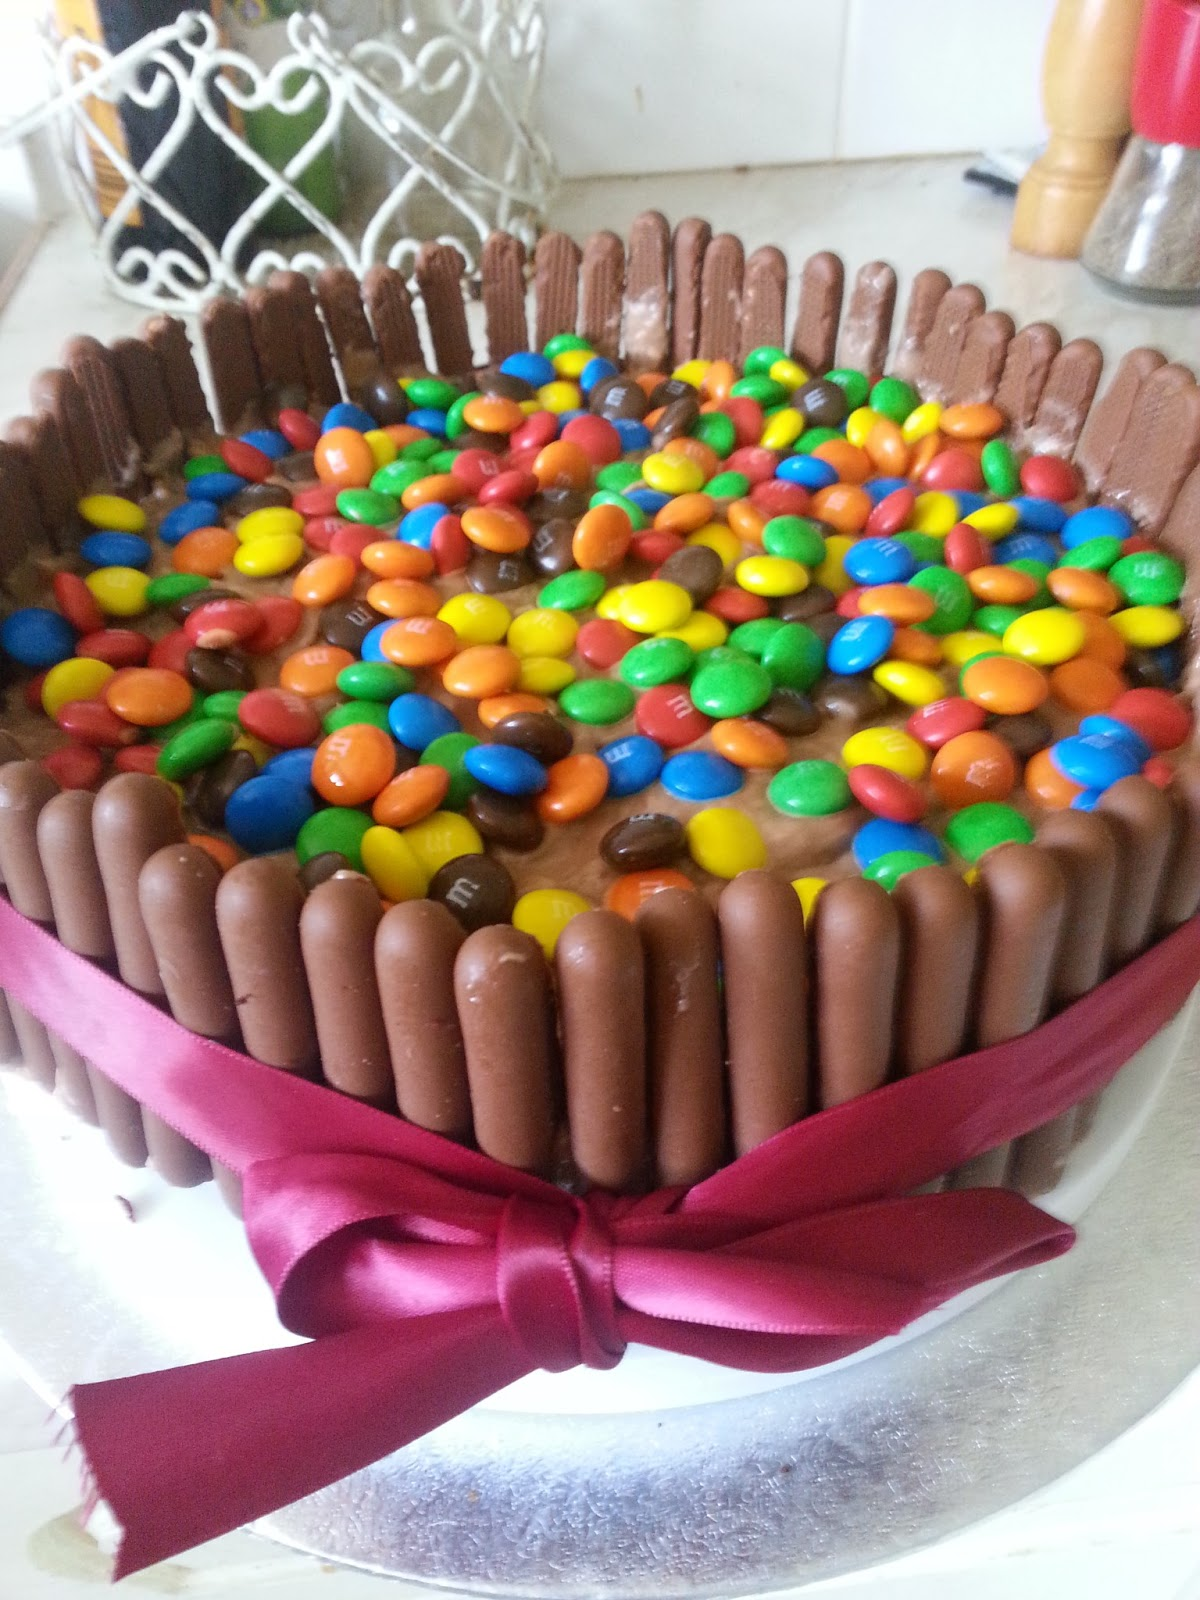 birthday party ideas 14 year old image inspiration of cake and